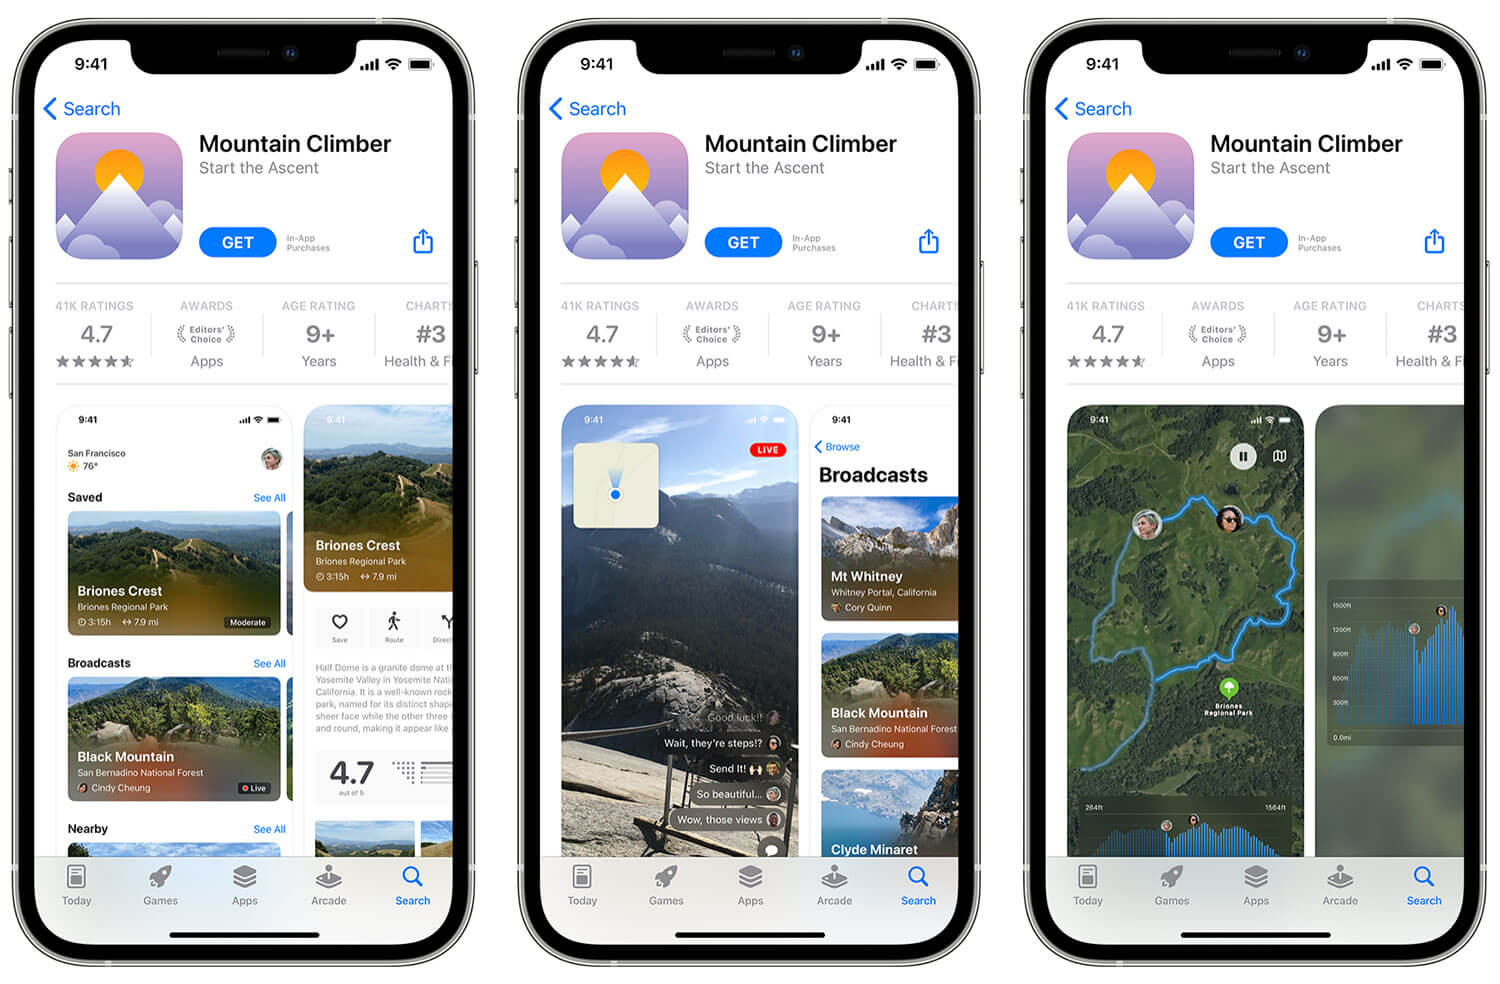 Custom landing pages in the App Store